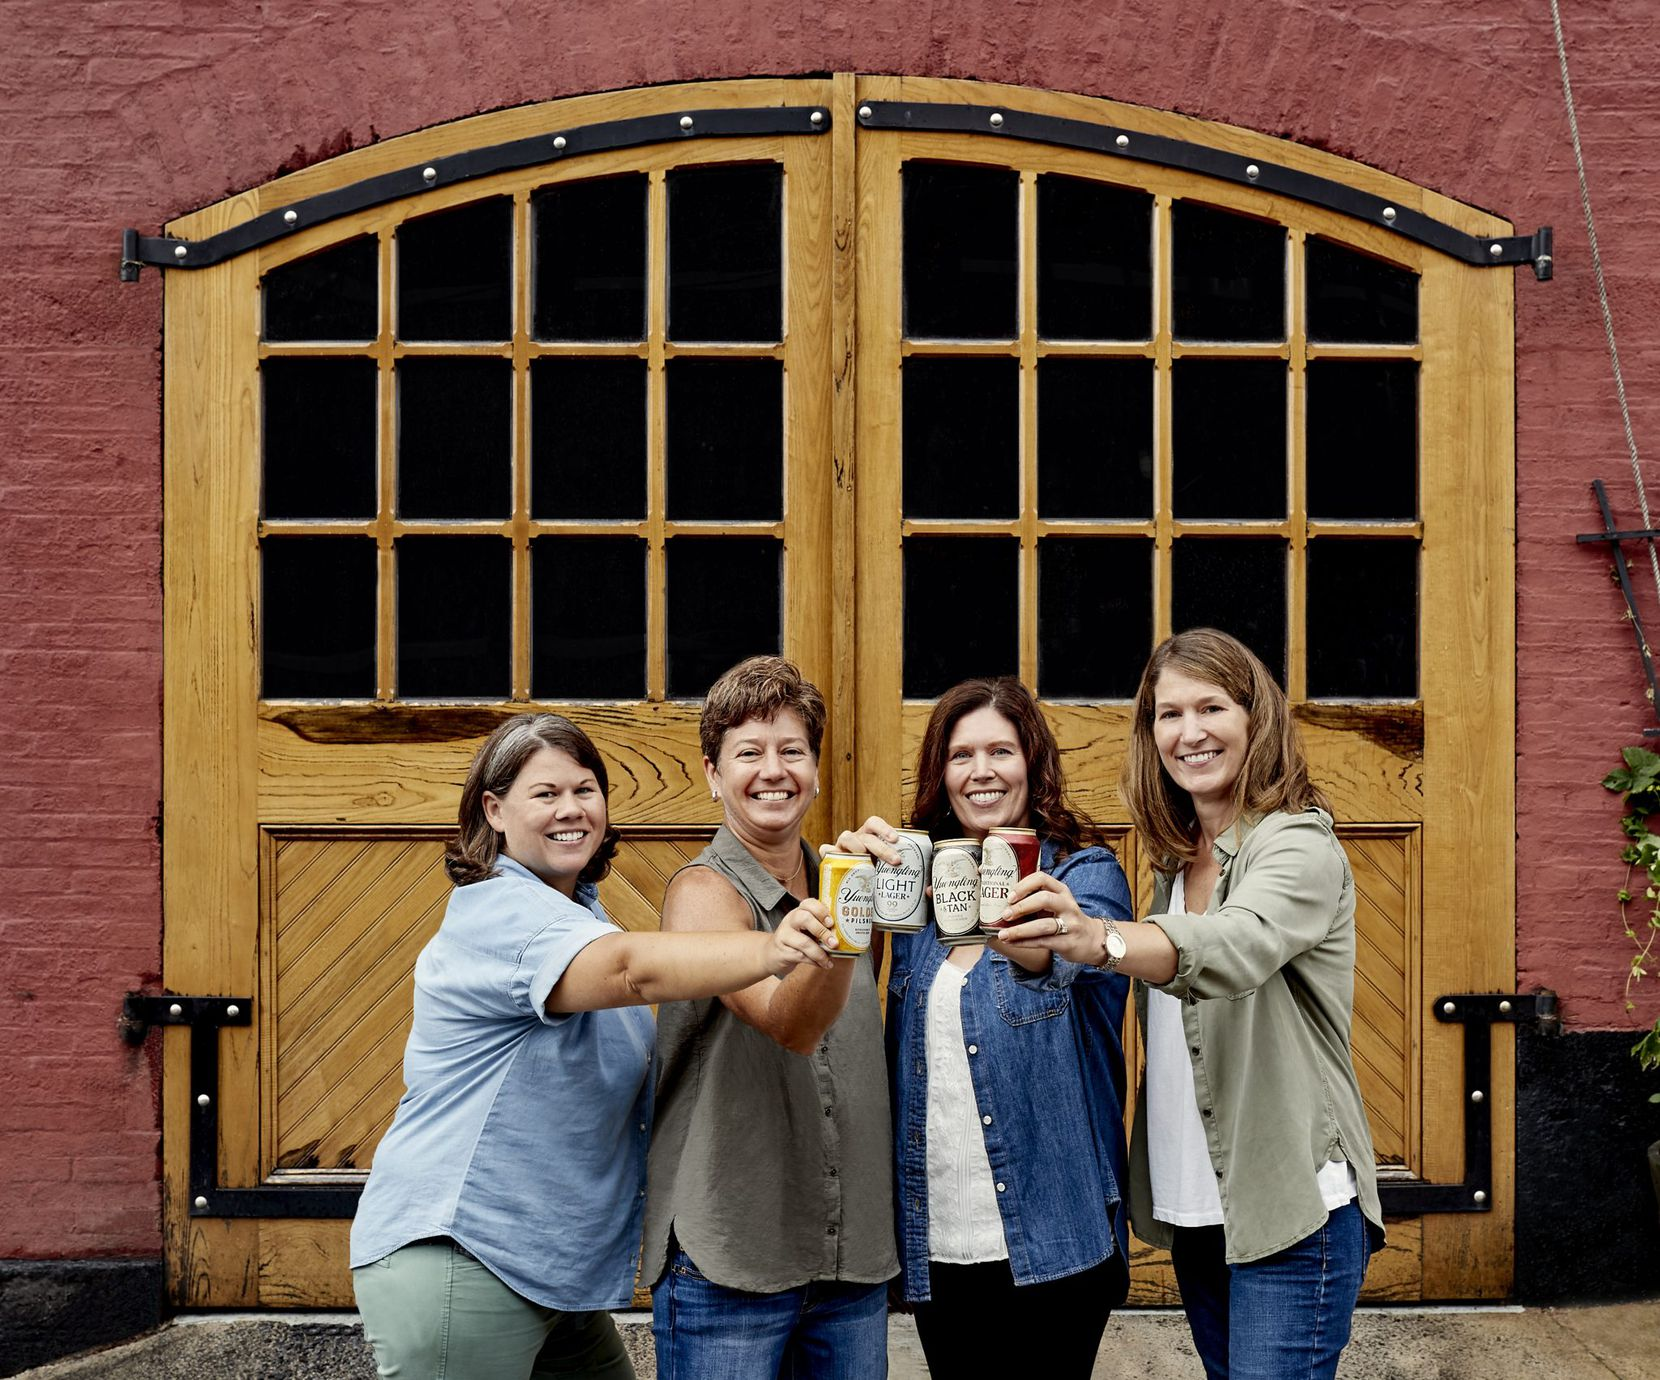 D.G. Yuengling & Son has been a family-run brewery since it launched in 1829. The company is operated by president Dick Yuengling, a fifth-generation family member, and his four daughters (pictured, from left): Sheryl Yuengling, Jen Yuengling, Debbie Yuengling and Wendy Yuengling.